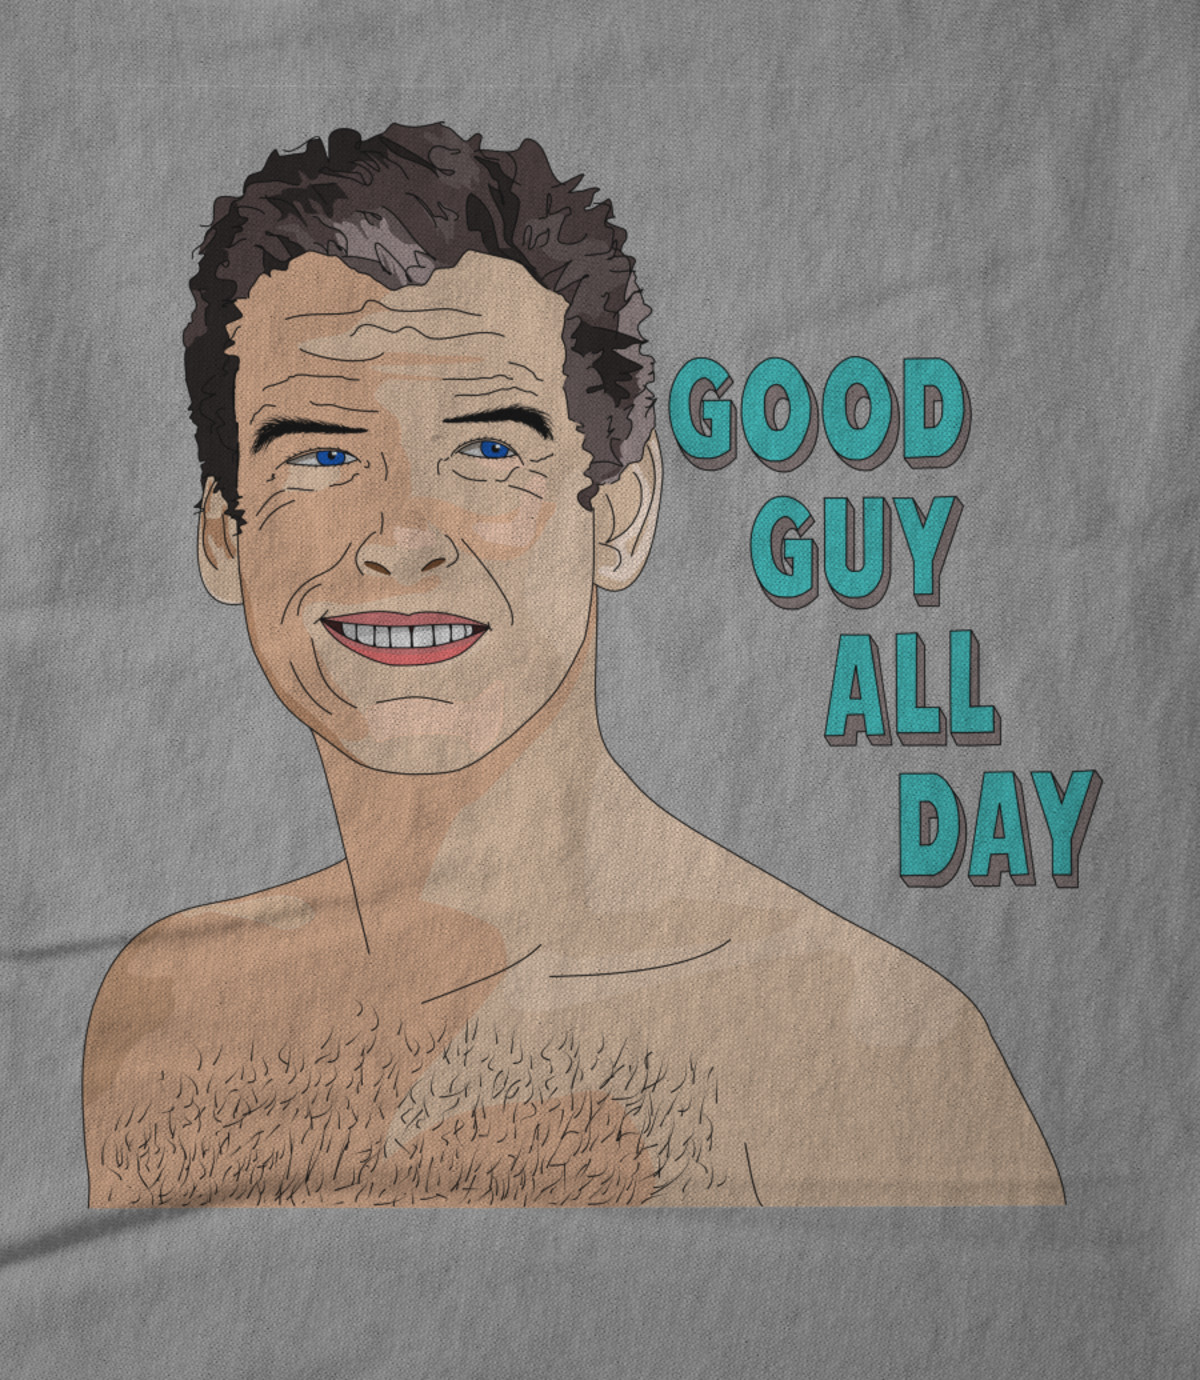 What we remember good guy all day grey 1524259811